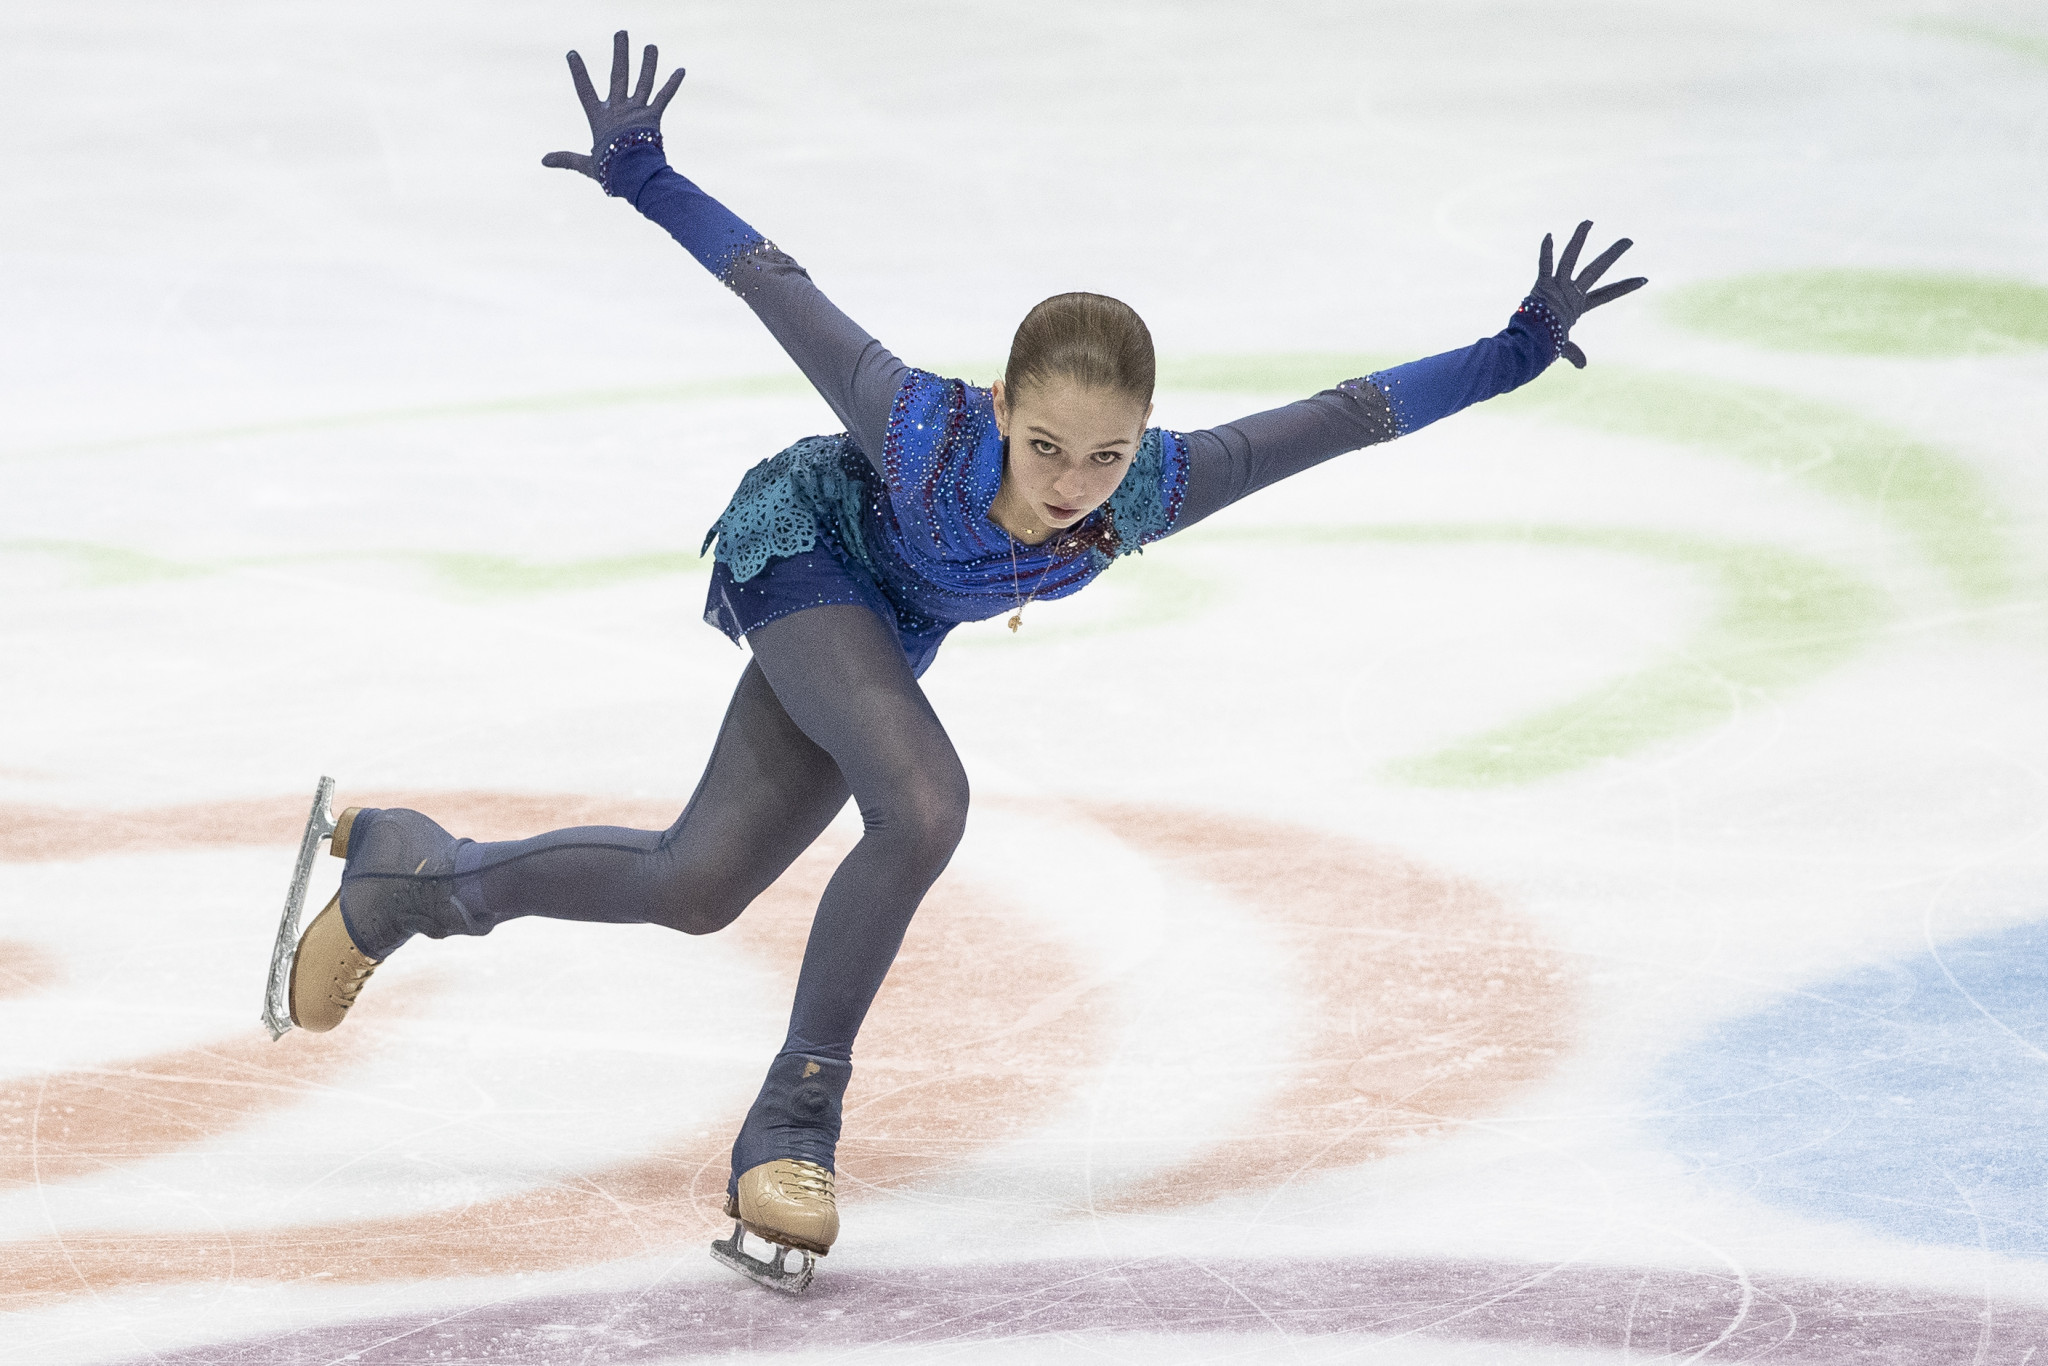 Figure skating star Alexandra Trusova has successfully landed a quadruple Rittberger jump in training, according to her coach ©Getty Images